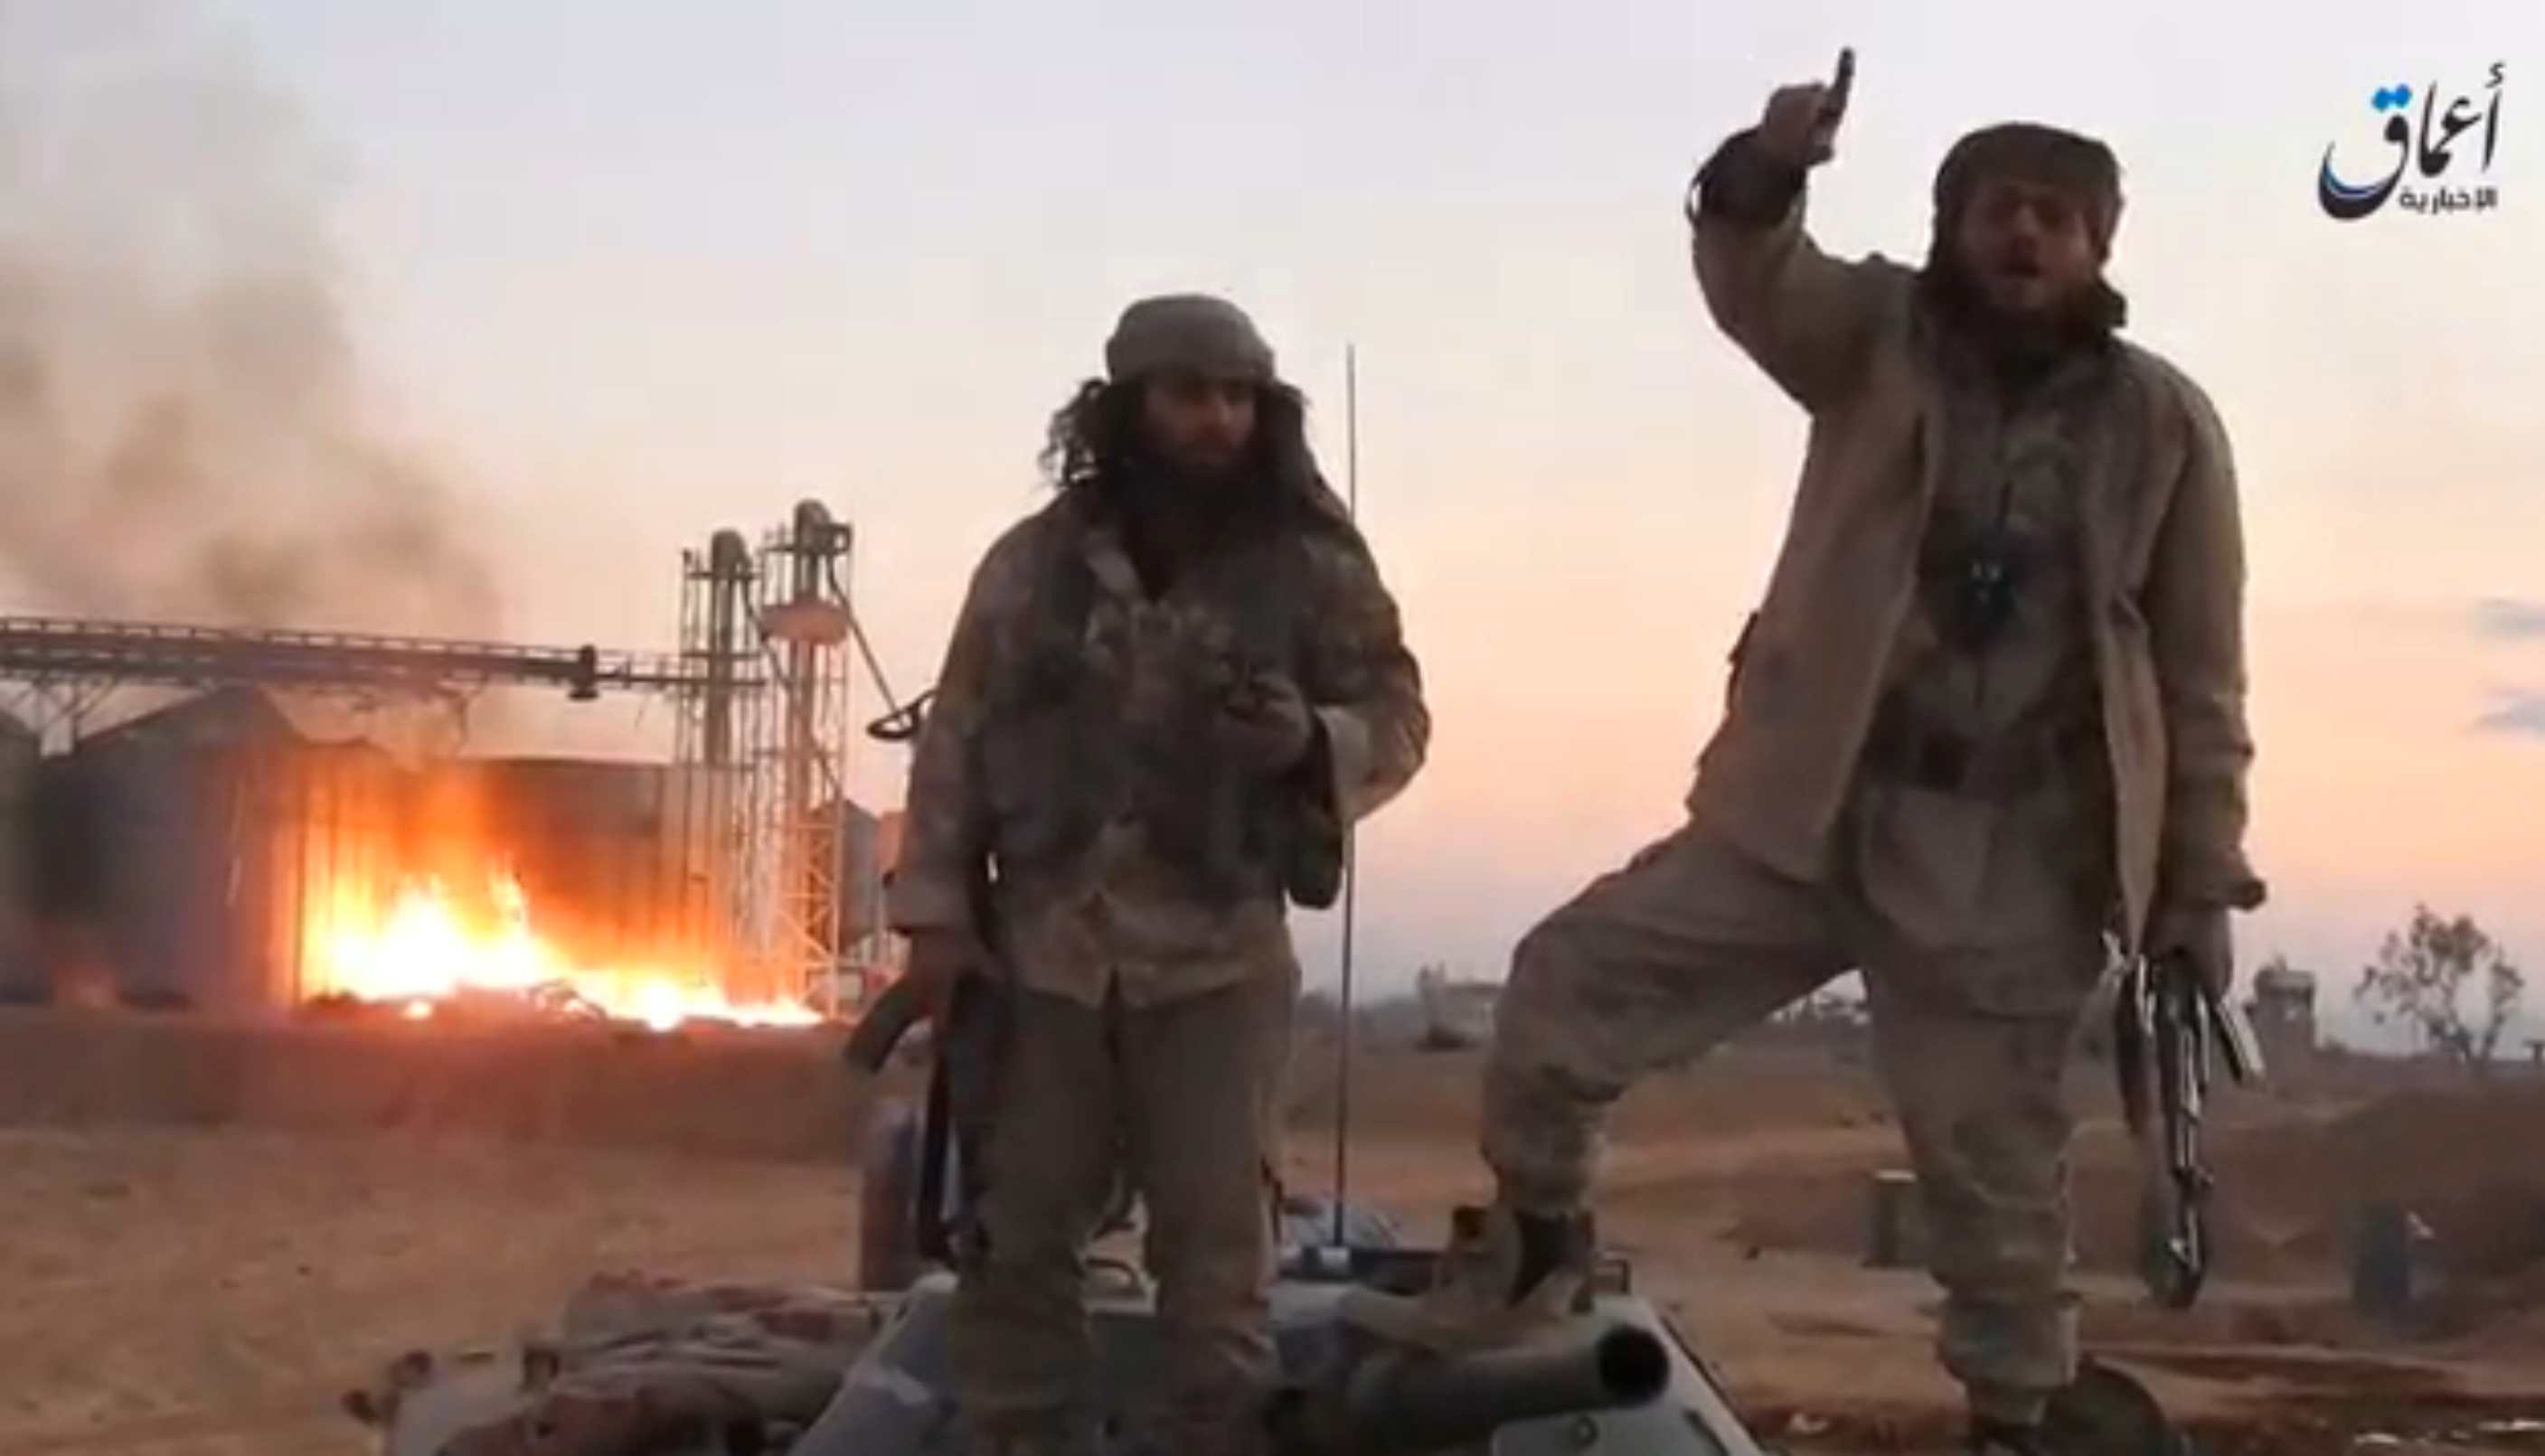 A still image taken from a video released by Islamic State-affiliated Amaq news agency, said to be in Palmyra, on December 11, 2016, purports to show Islamic State fighters in front of silos on fire and said to have been taken over by them. Handout via REUTERS